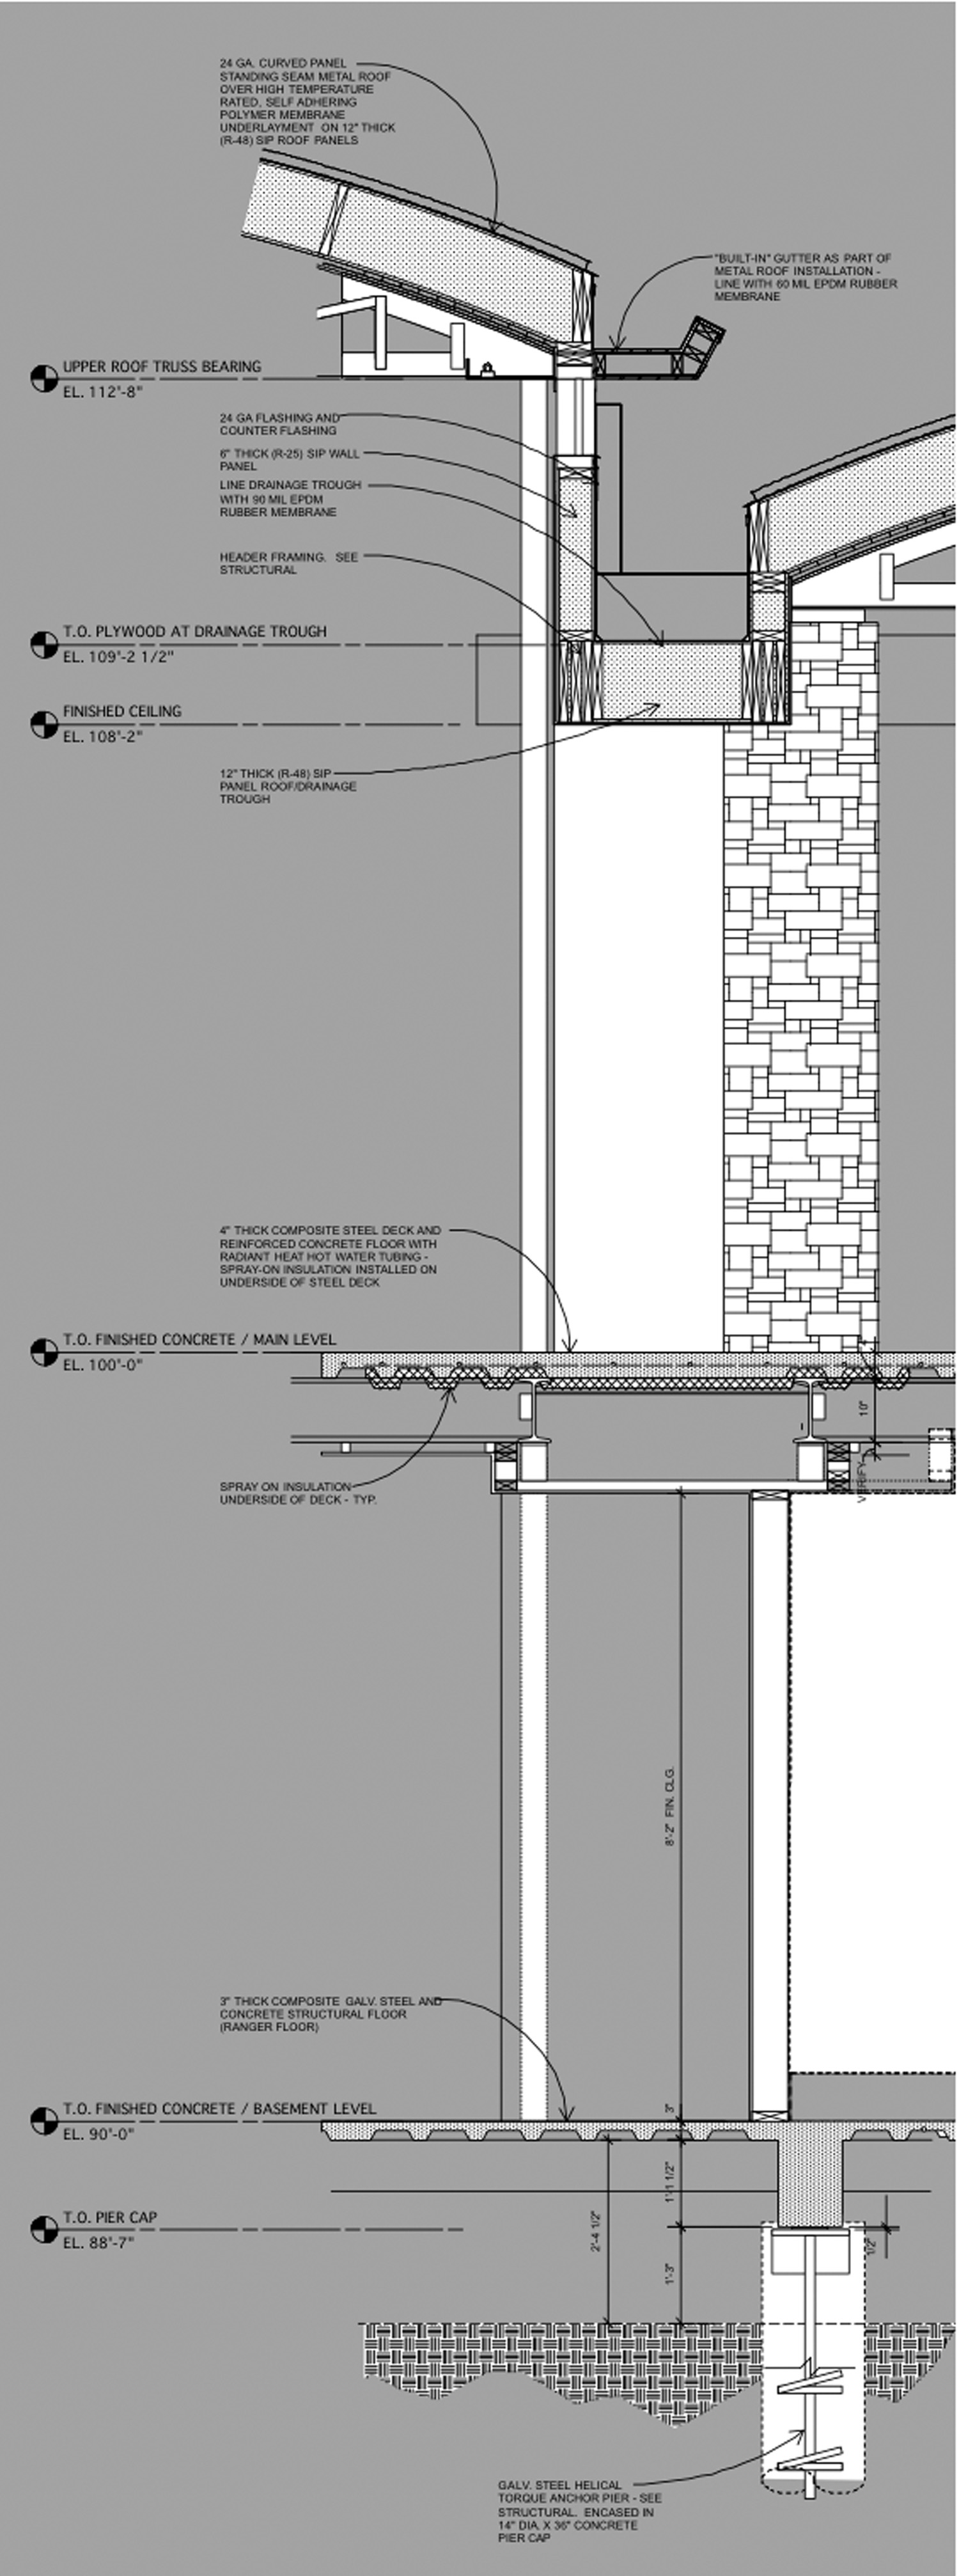 wall section at drainage channel and clerestory window